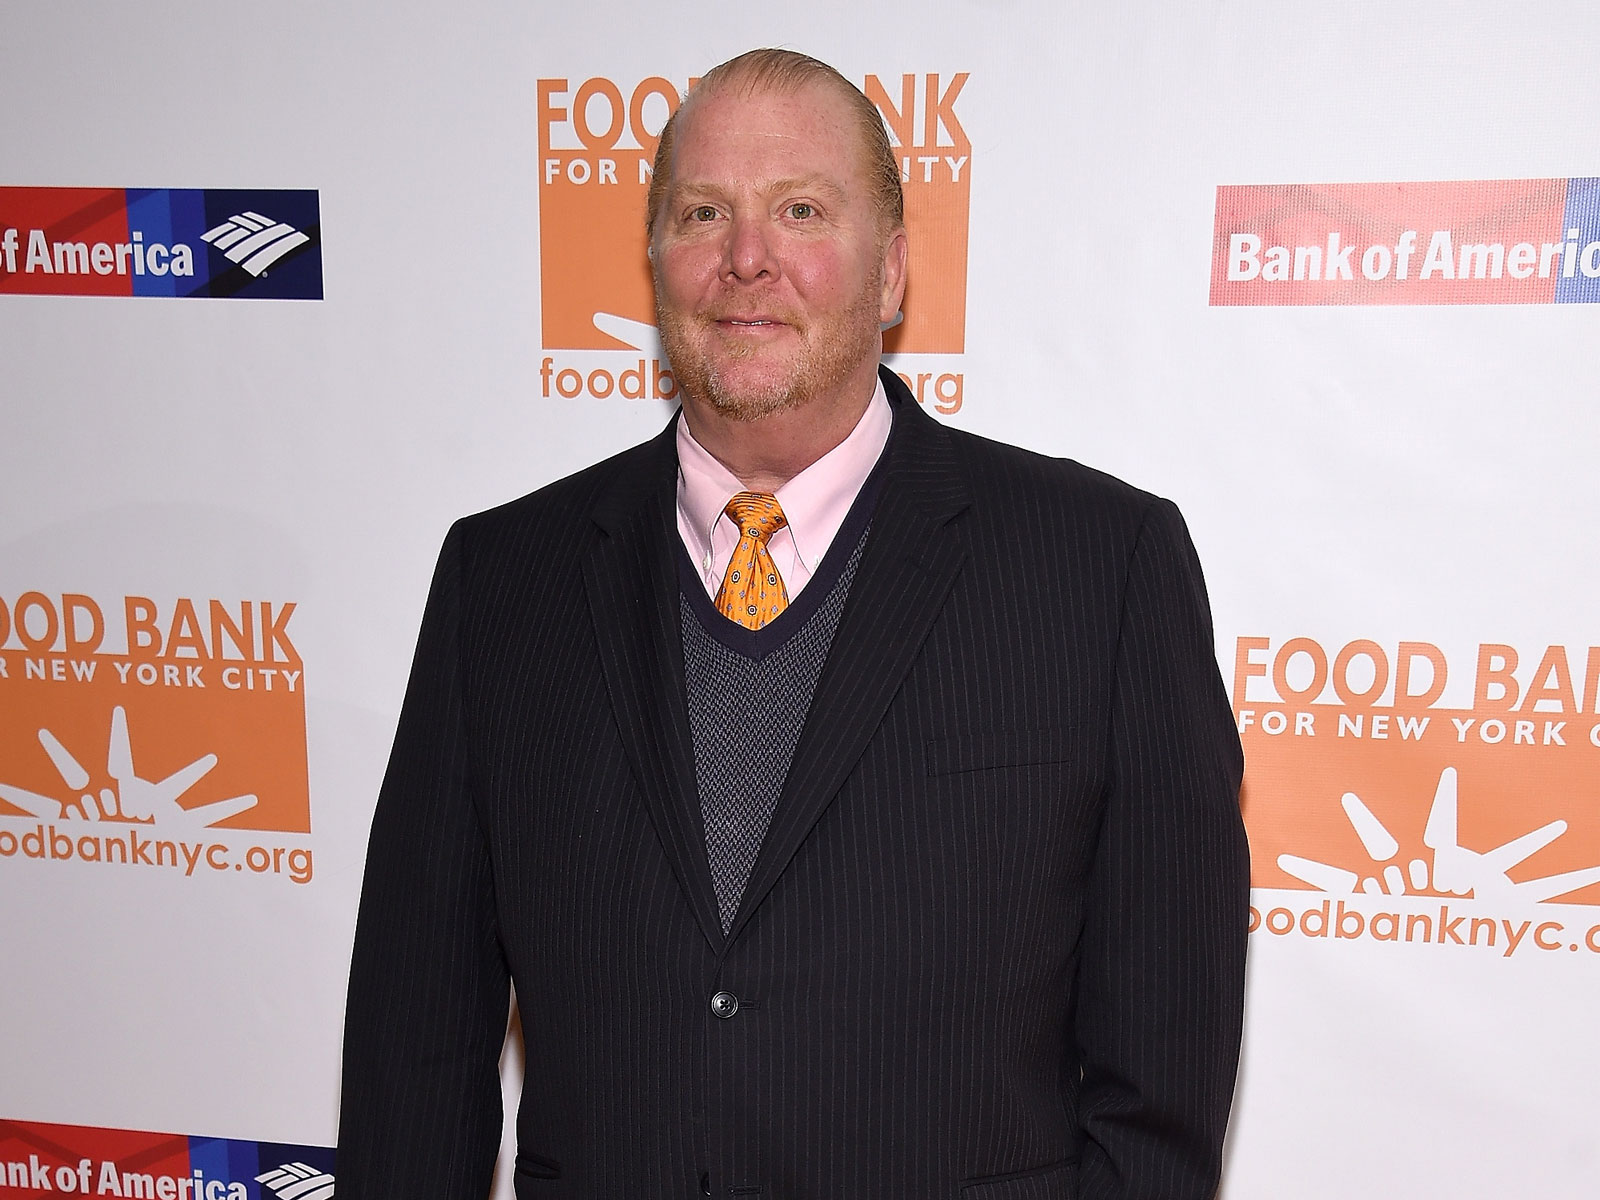 Actress Siobhan Thompson Accuses 'Handsy' Mario Batali of Harassment, Becoming Fifth Accuser